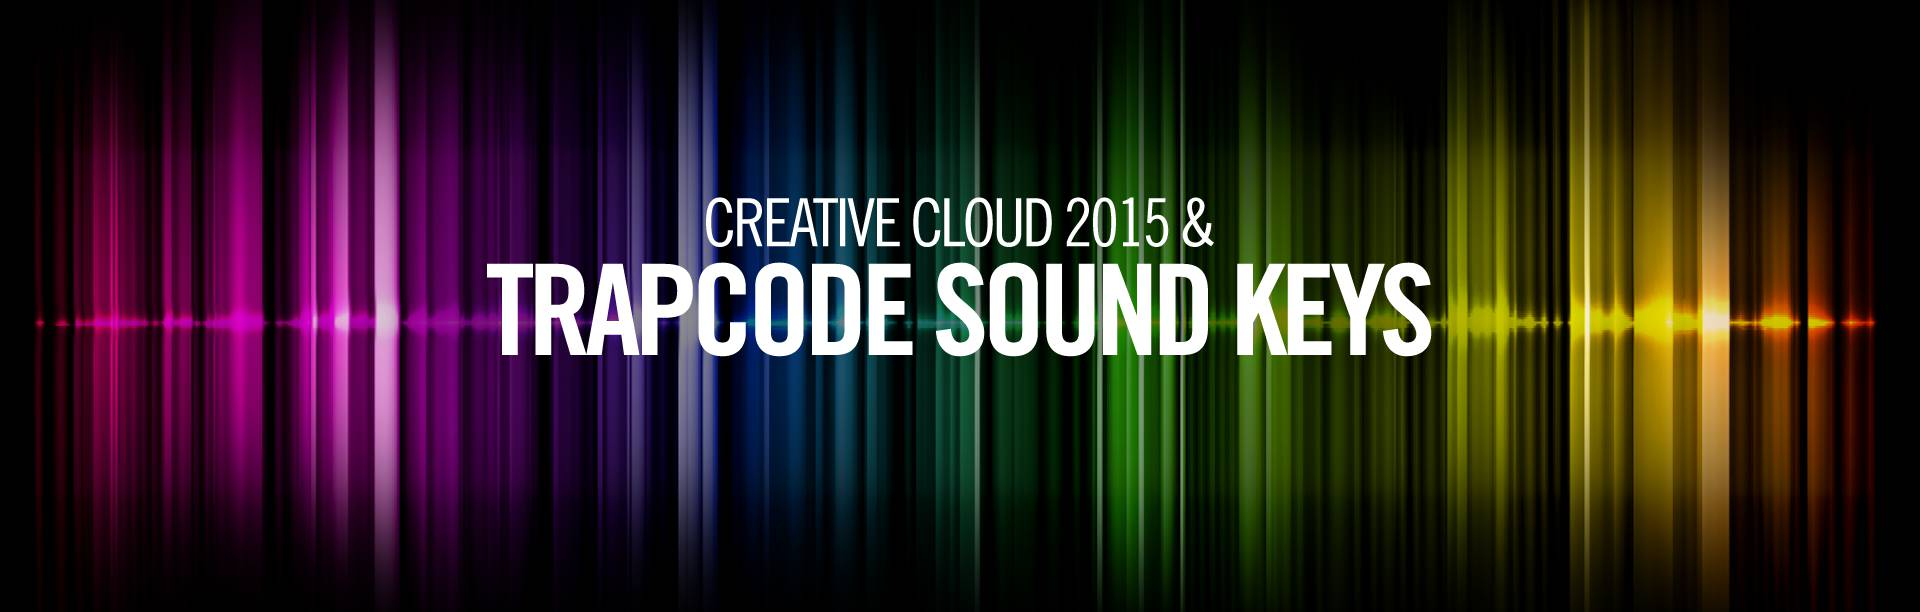 Creative Could 2015 & Trapcode Sound Keys